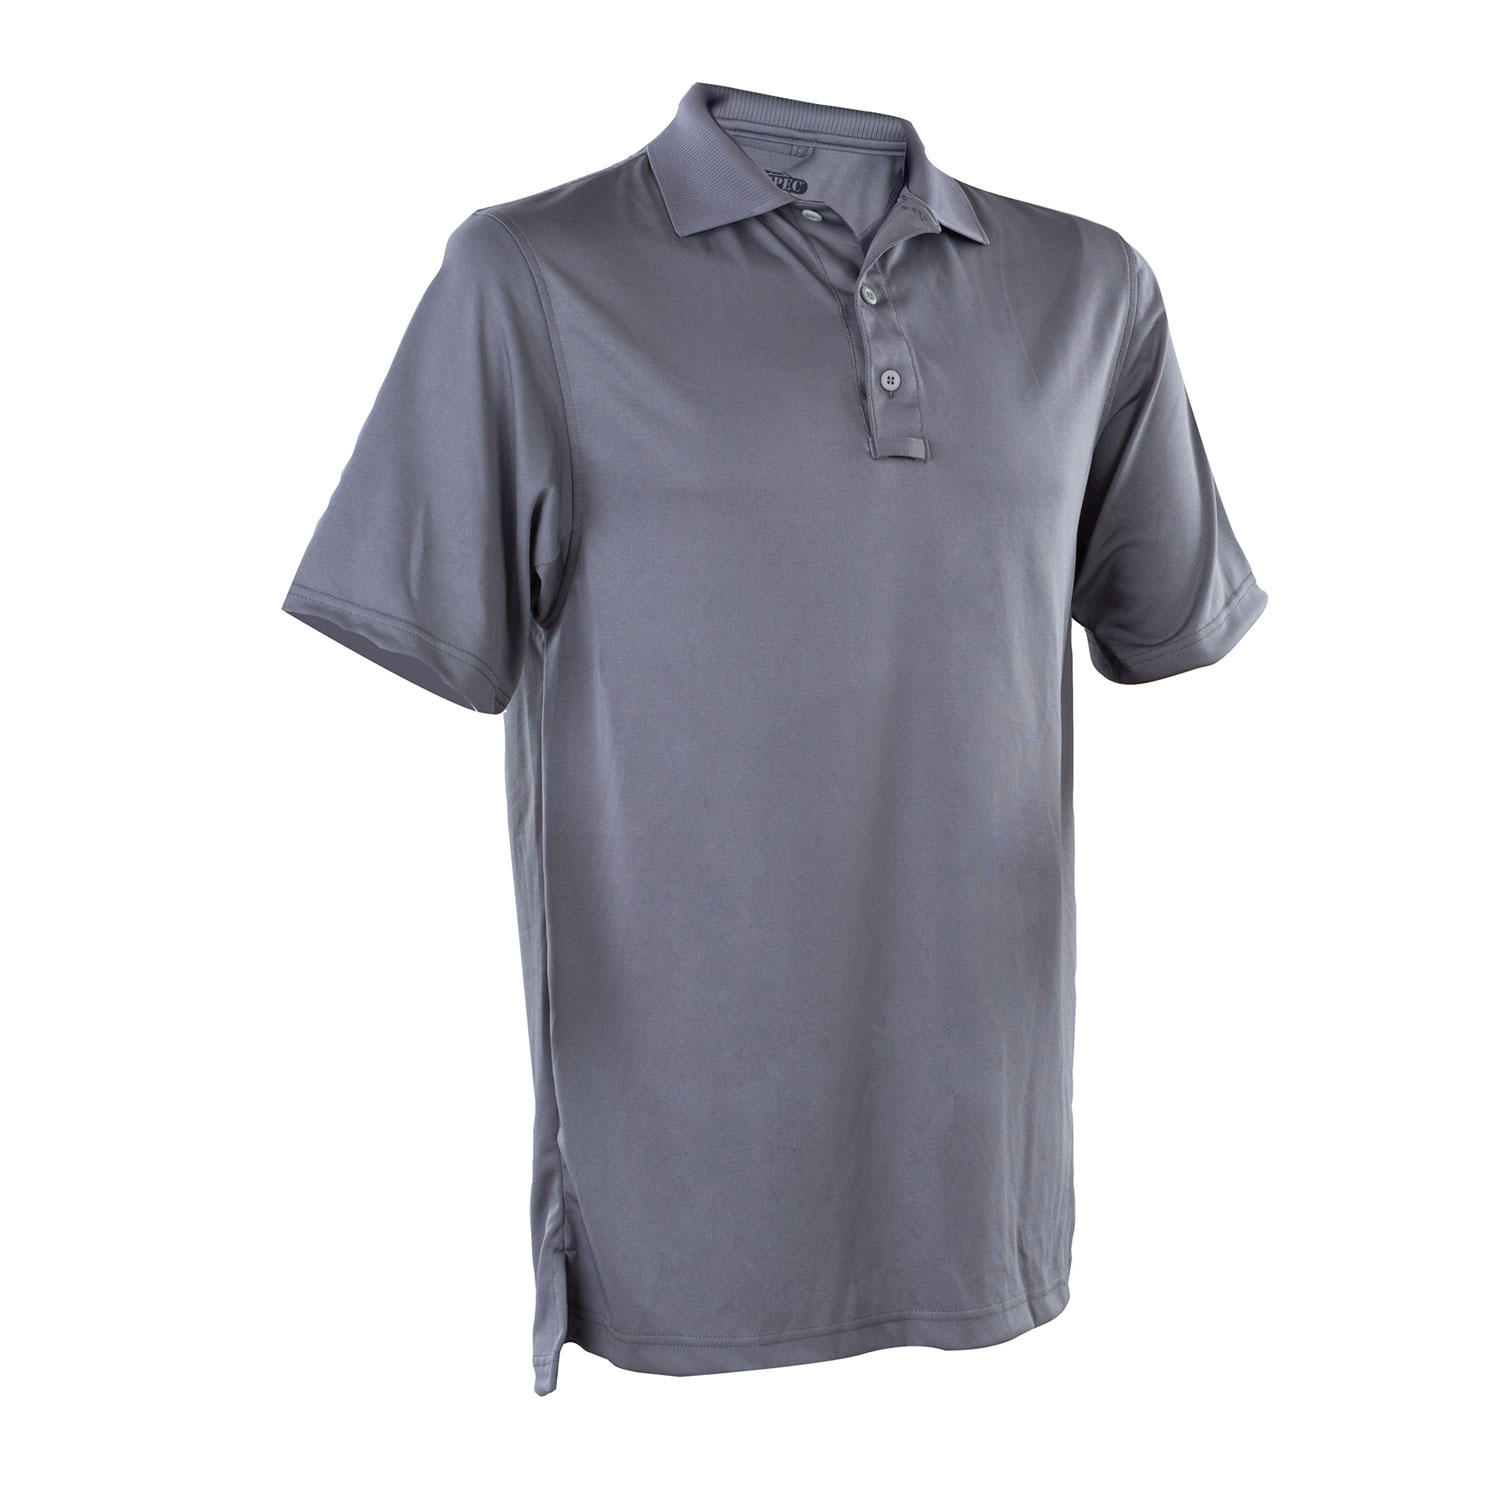 Tru-Spec Men's 24-7 Short Sleeve Performance Polo